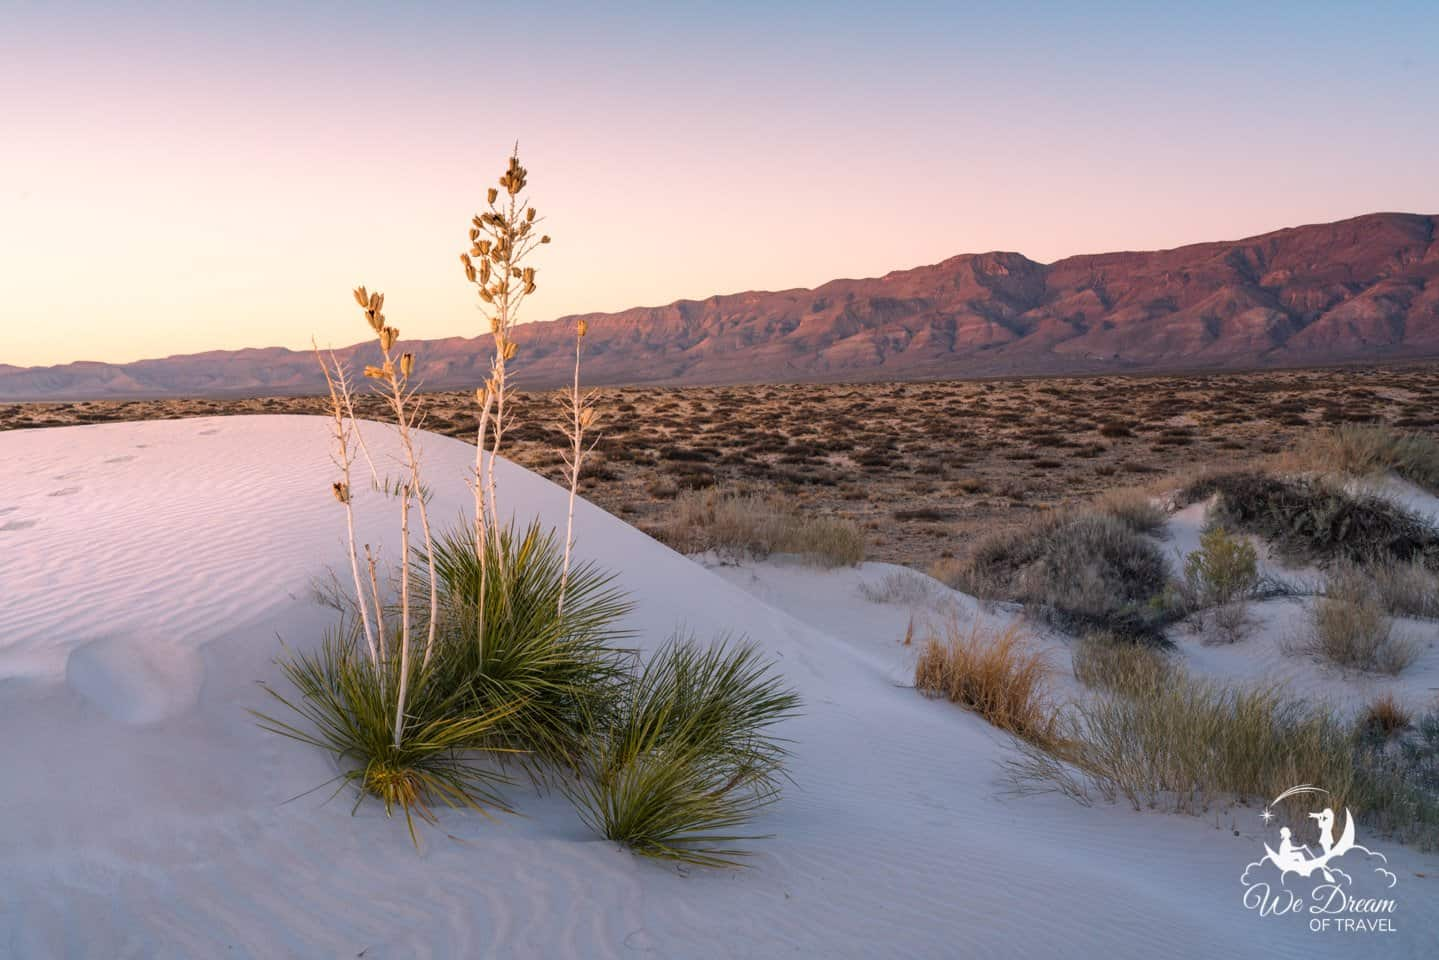 Golden Hour lights the Guadalupe Mountains from the sand dunes of Salt Basin Dunes.